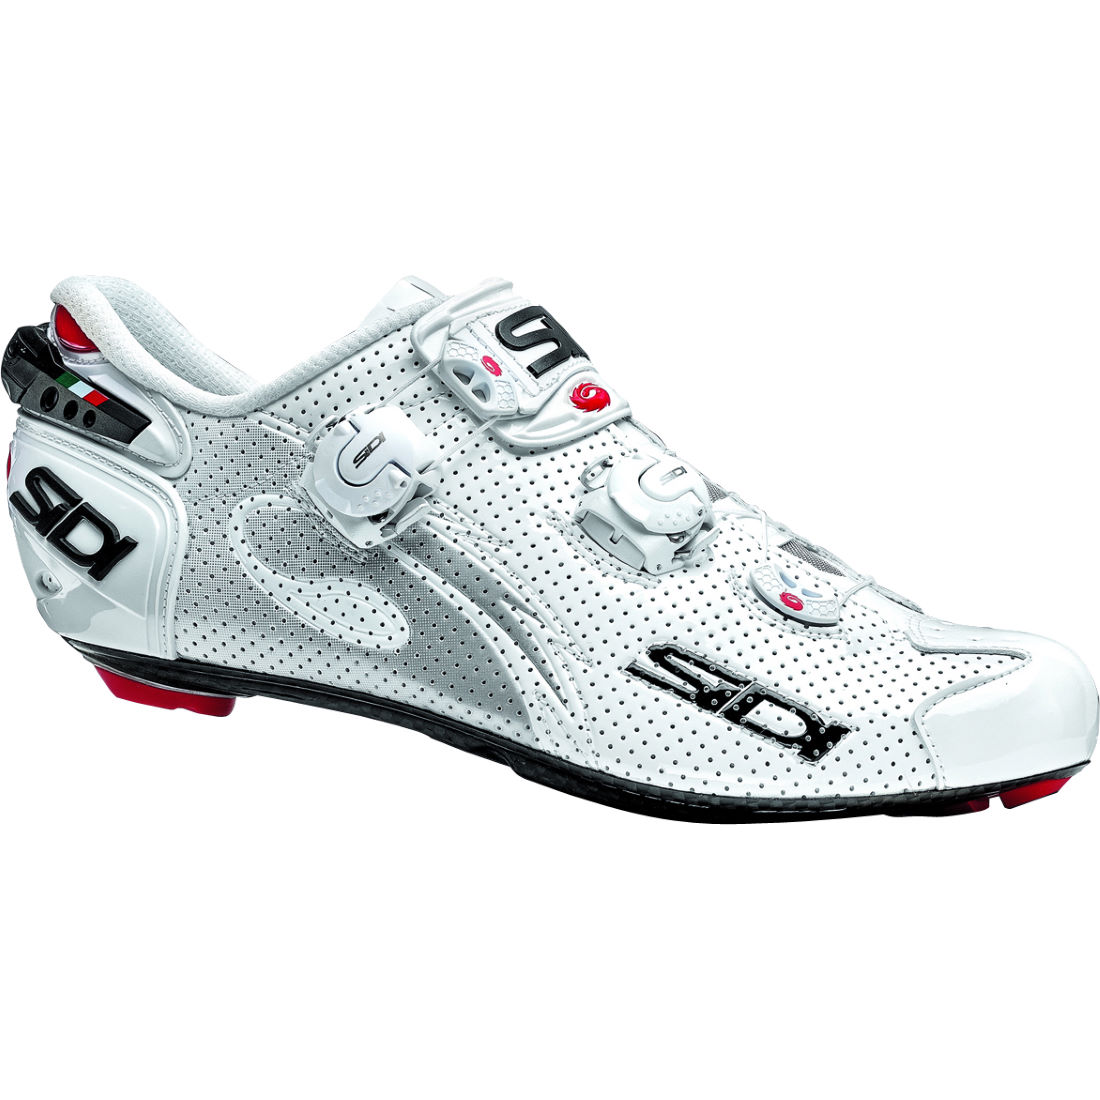 chaussures de route sidi wire vernice air vent carbon road shoes wiggle france. Black Bedroom Furniture Sets. Home Design Ideas